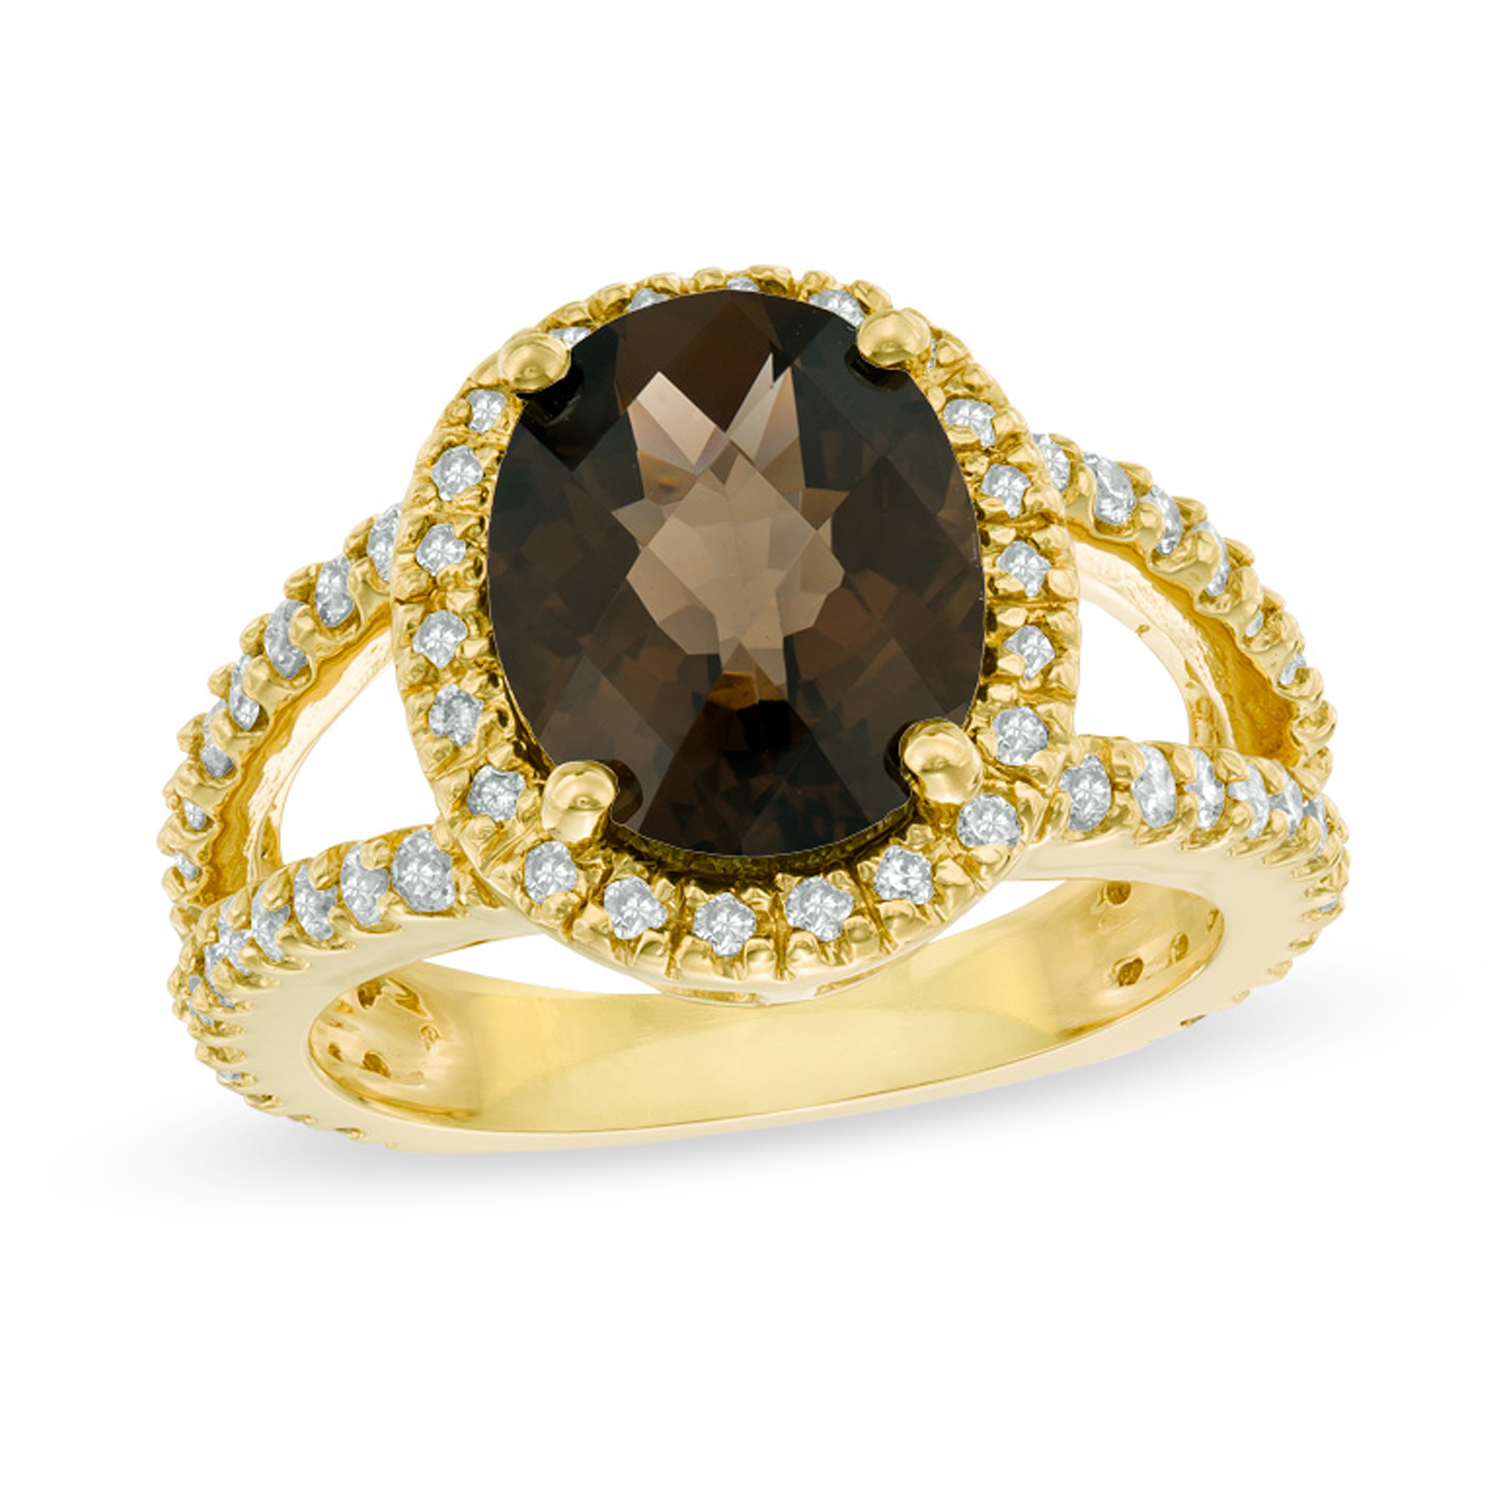 View 0.85ctw Diamond and Smokey Quartz Ring in 14k Gold